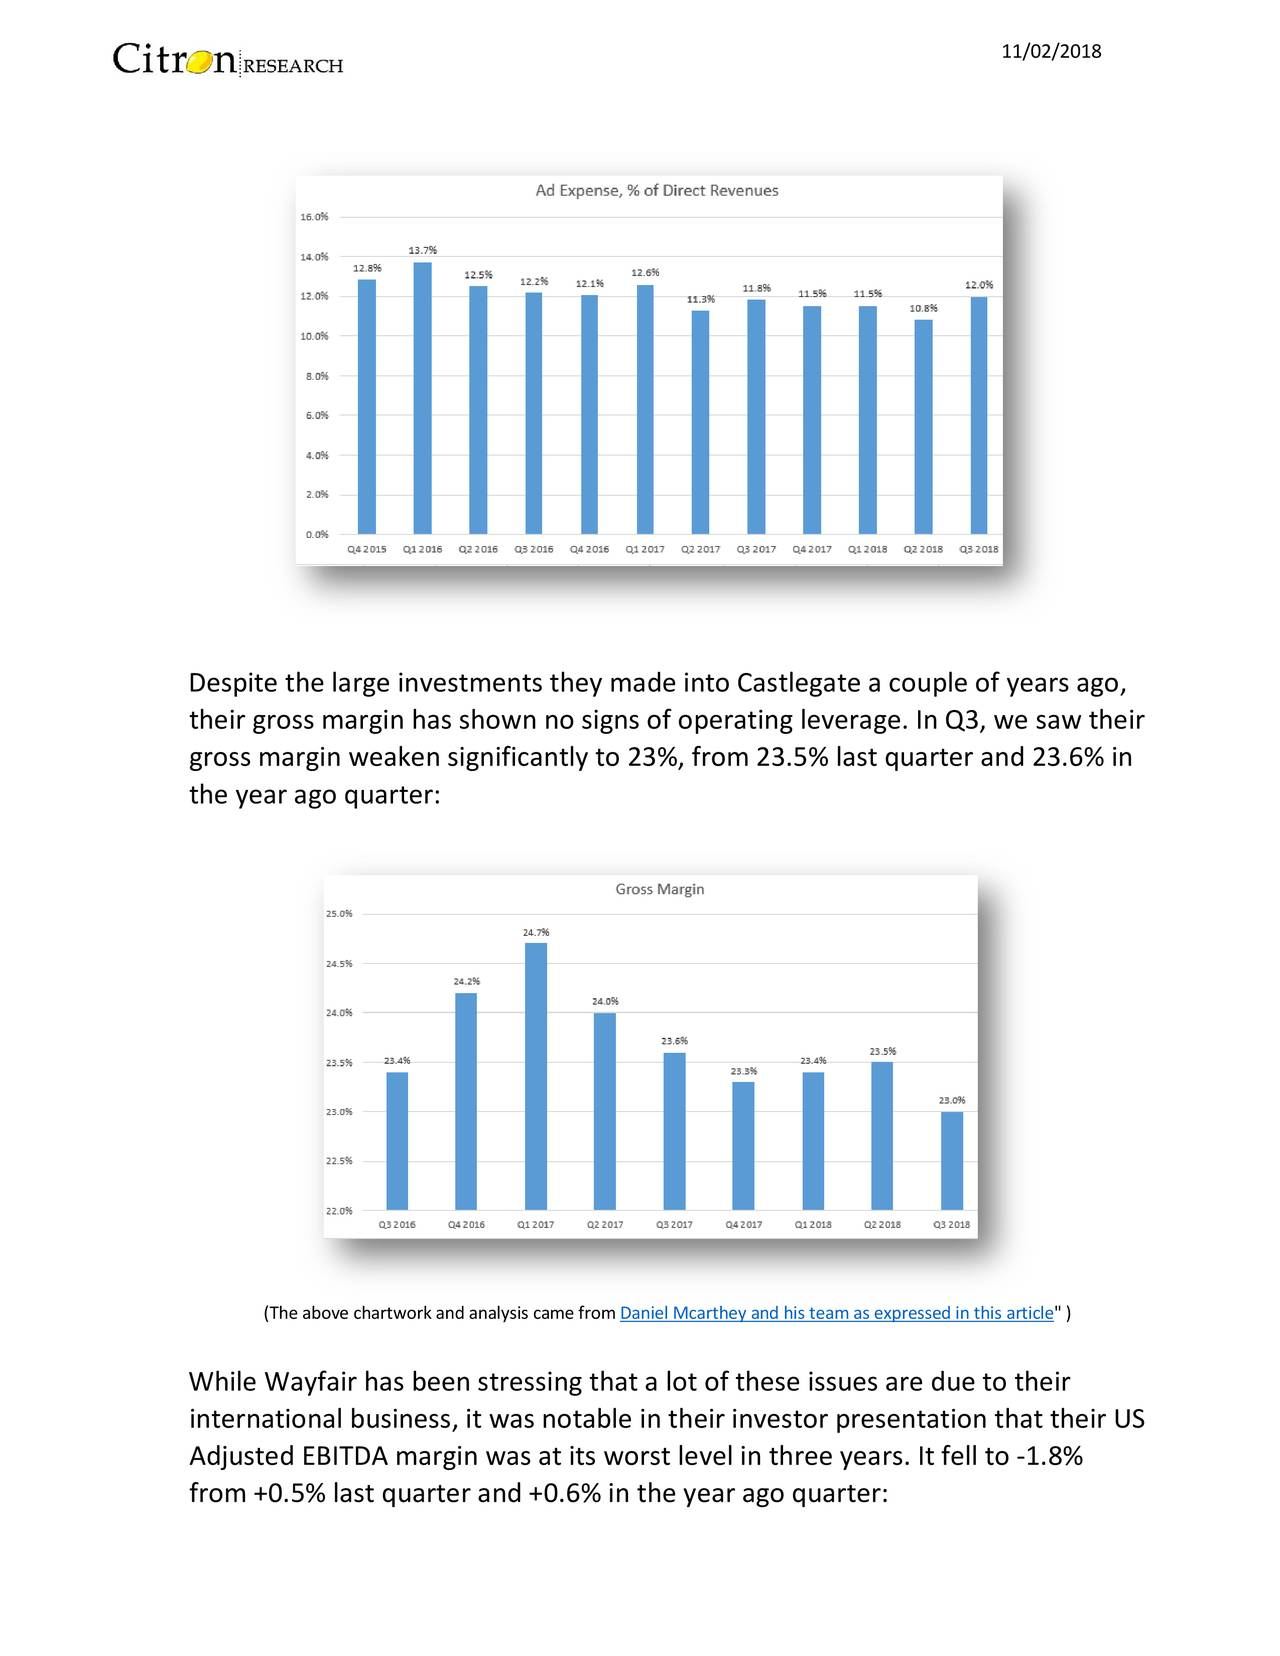 """Despite the large investments they made into Castlegate a couple of years ago, their gross margin has shown no signs of operating leverage. In Q3, we saw their gross margin weaken significantly to 23%, from 23.5% last quarter and 23.6% in the year ago quarter: (The above chartworkand analysis came fromDaniel Mcarthey and his teamas expressed in this article """" ) While Wayfair has been stressing that a lot of these issues are due to their international business, it was notable in theirinvestor presentation that their US Adjusted EBITDA margin was at its worst level in three years. It fell to-1.8% from +0.5% last quarter and +0.6% in the year ago quarter:"""